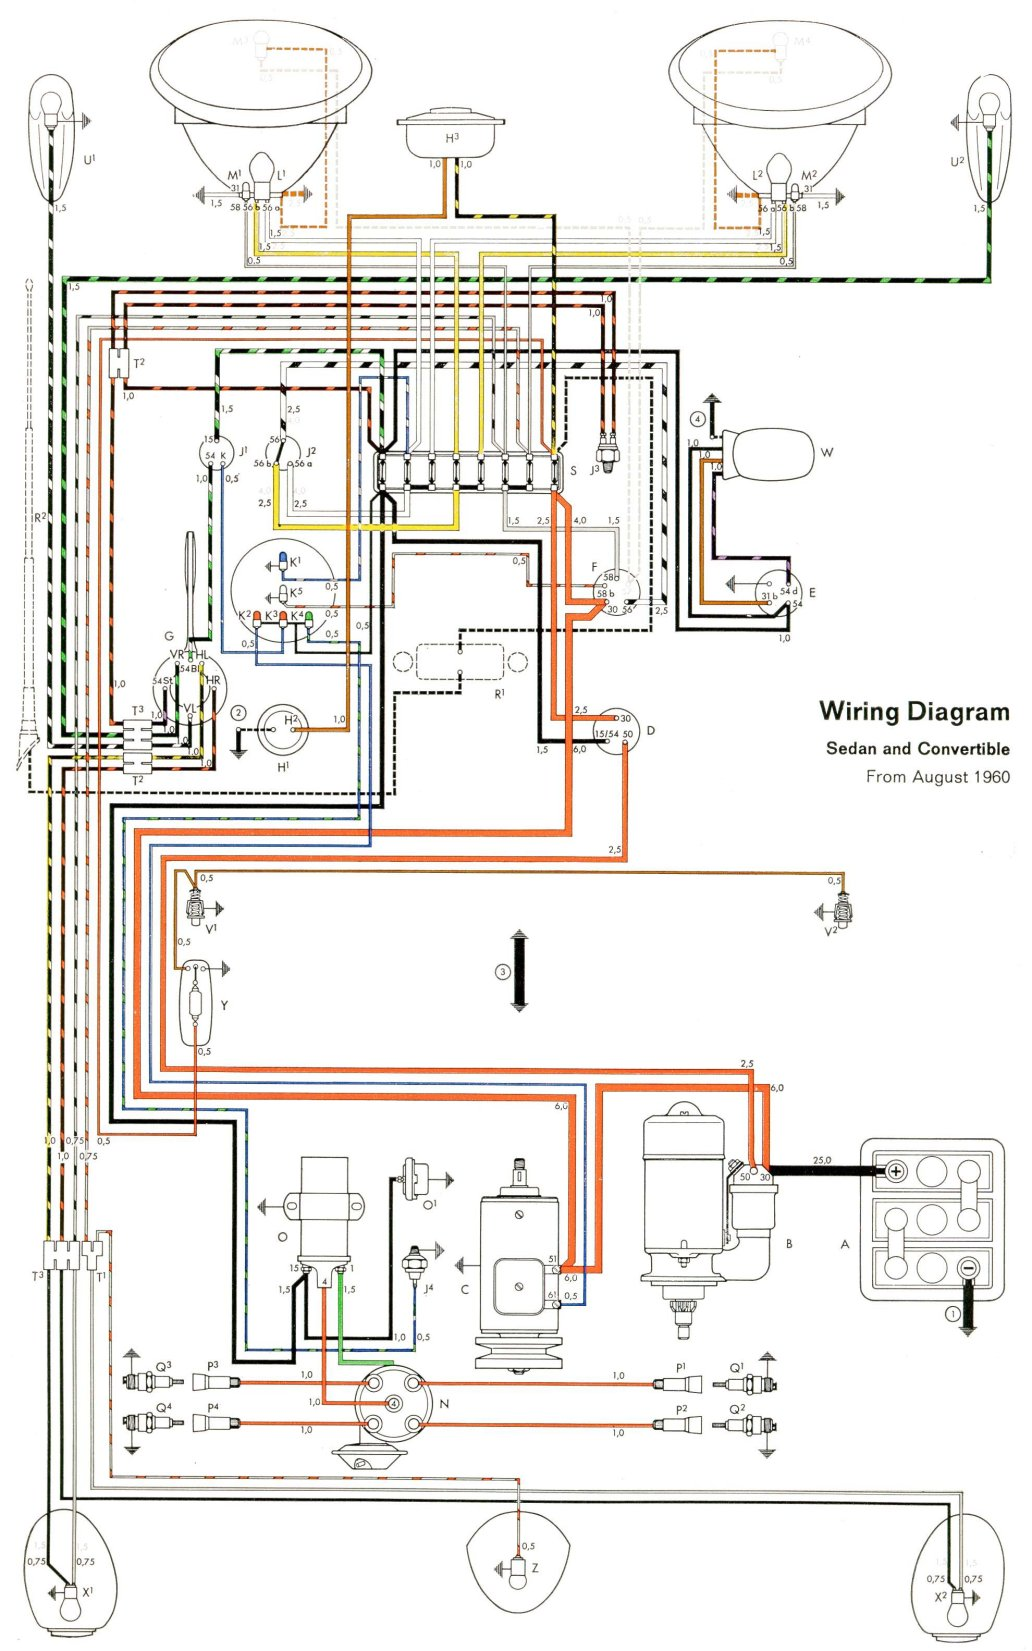 thesamba com type 1 wiring diagrams rh thesamba com 1968 VW Wiring Diagram 1964 VW Wiring Diagram